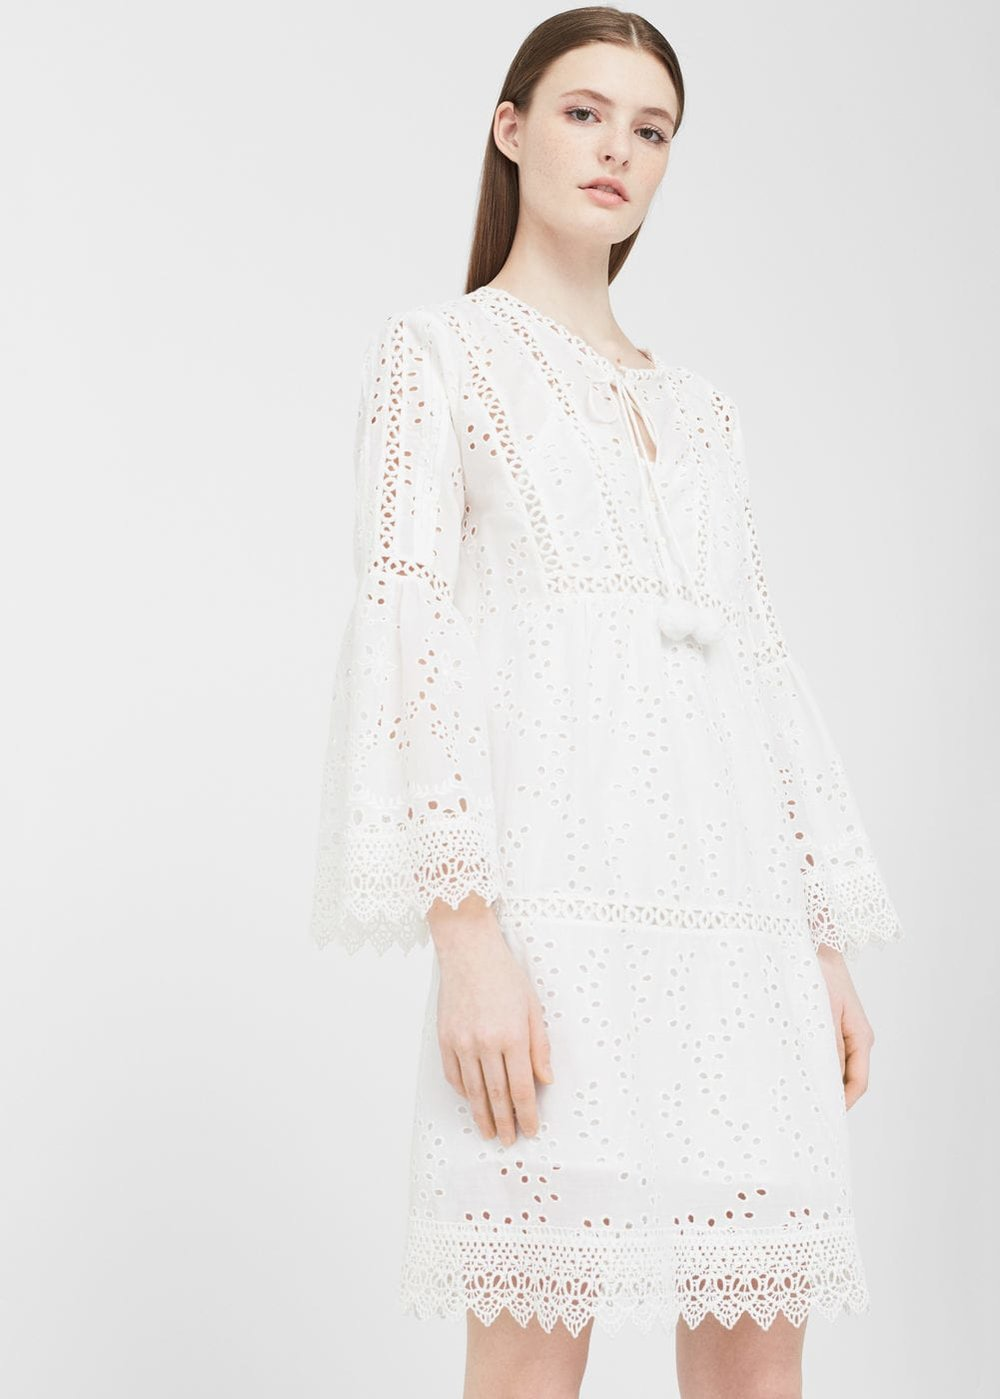 Openwork cotton dress, £39.99